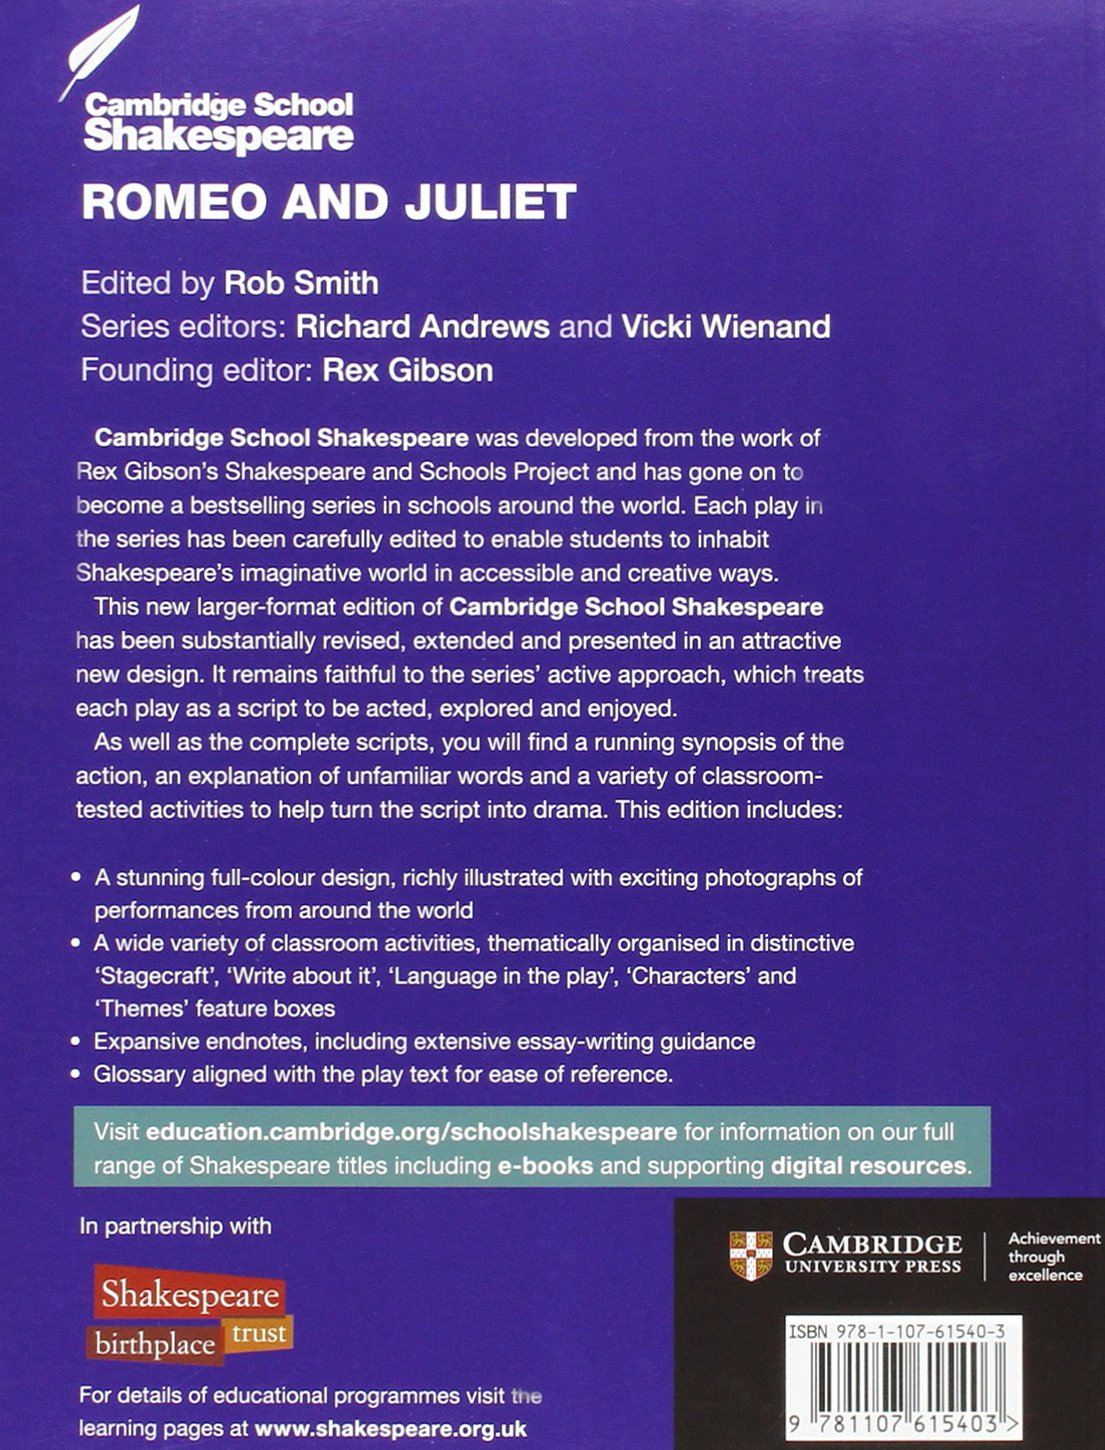 romeo and juliet cambridge school shakespeare co uk romeo and juliet cambridge school shakespeare co uk william shakespeare rex gibson robert smith richard wienand vicki wienand books